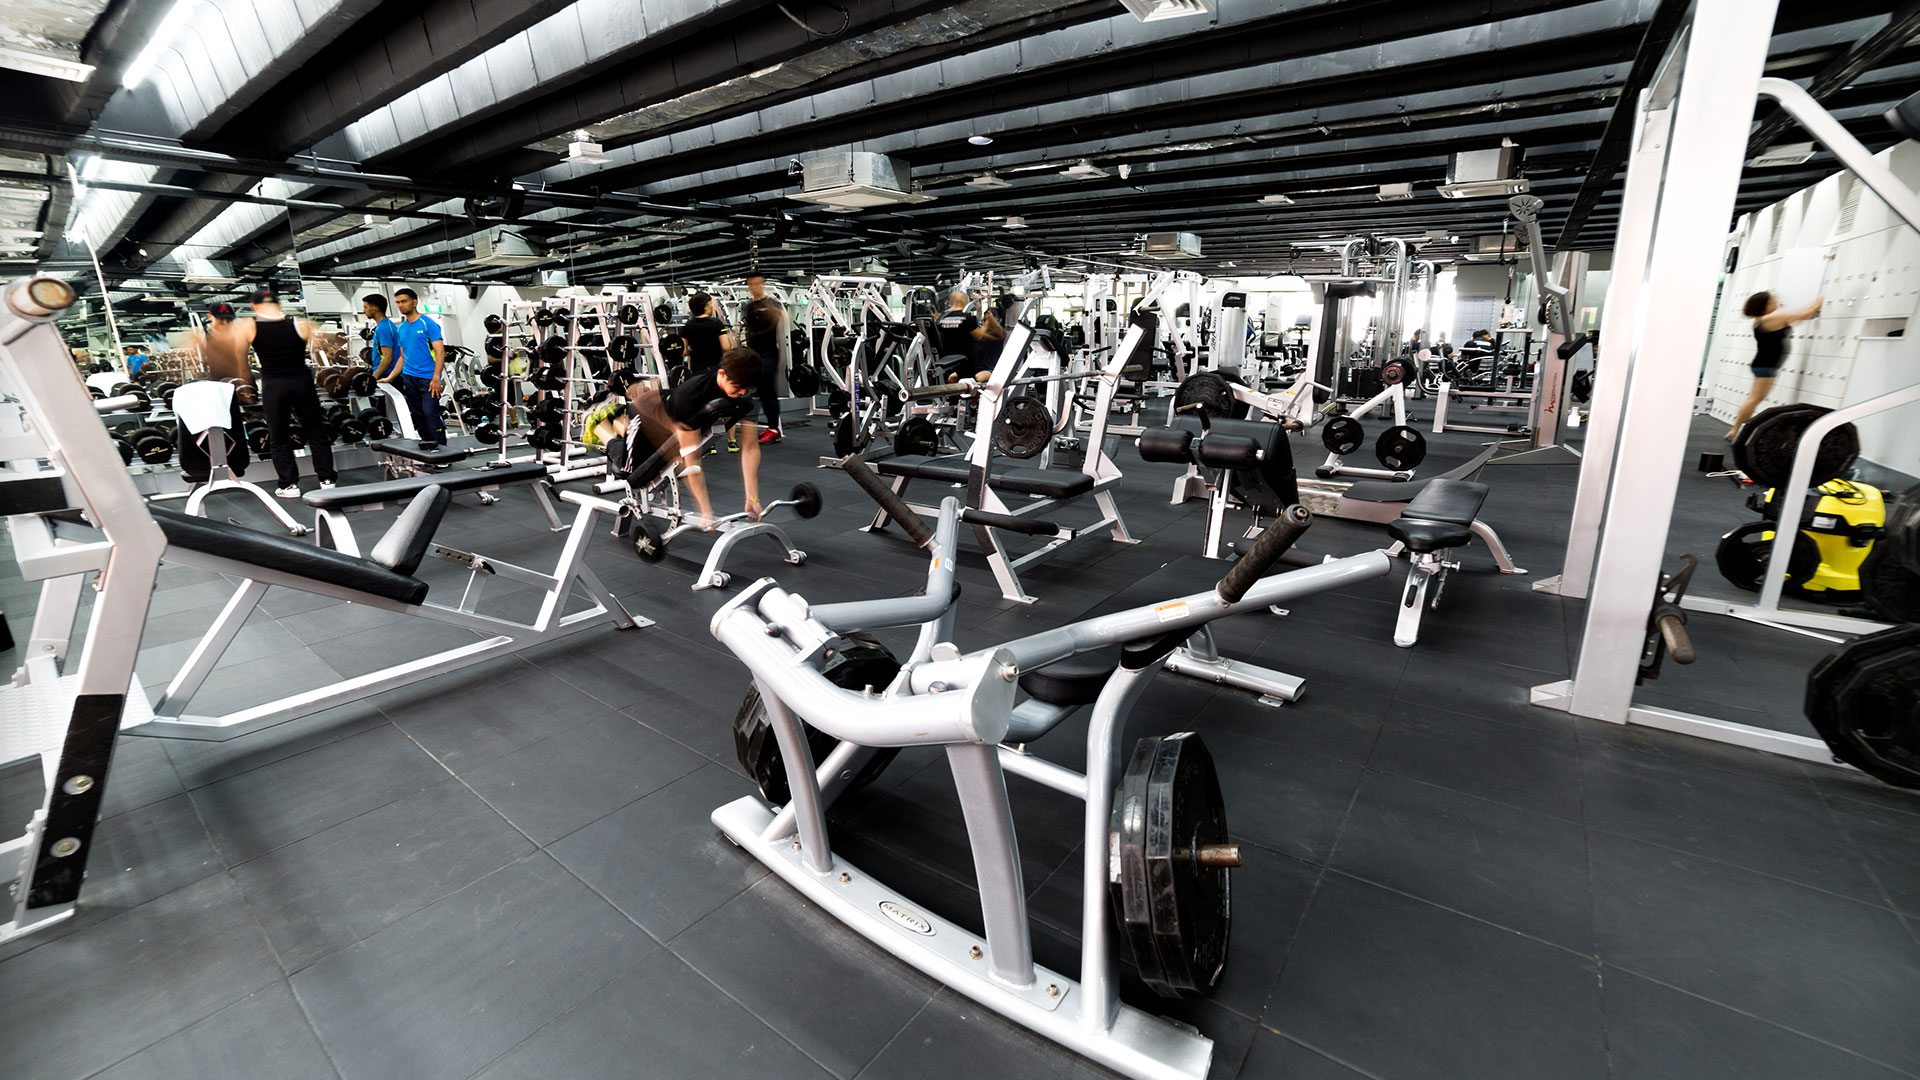 Make No More Excuses To Get Fit With These 24-hour Gyms In Singapore